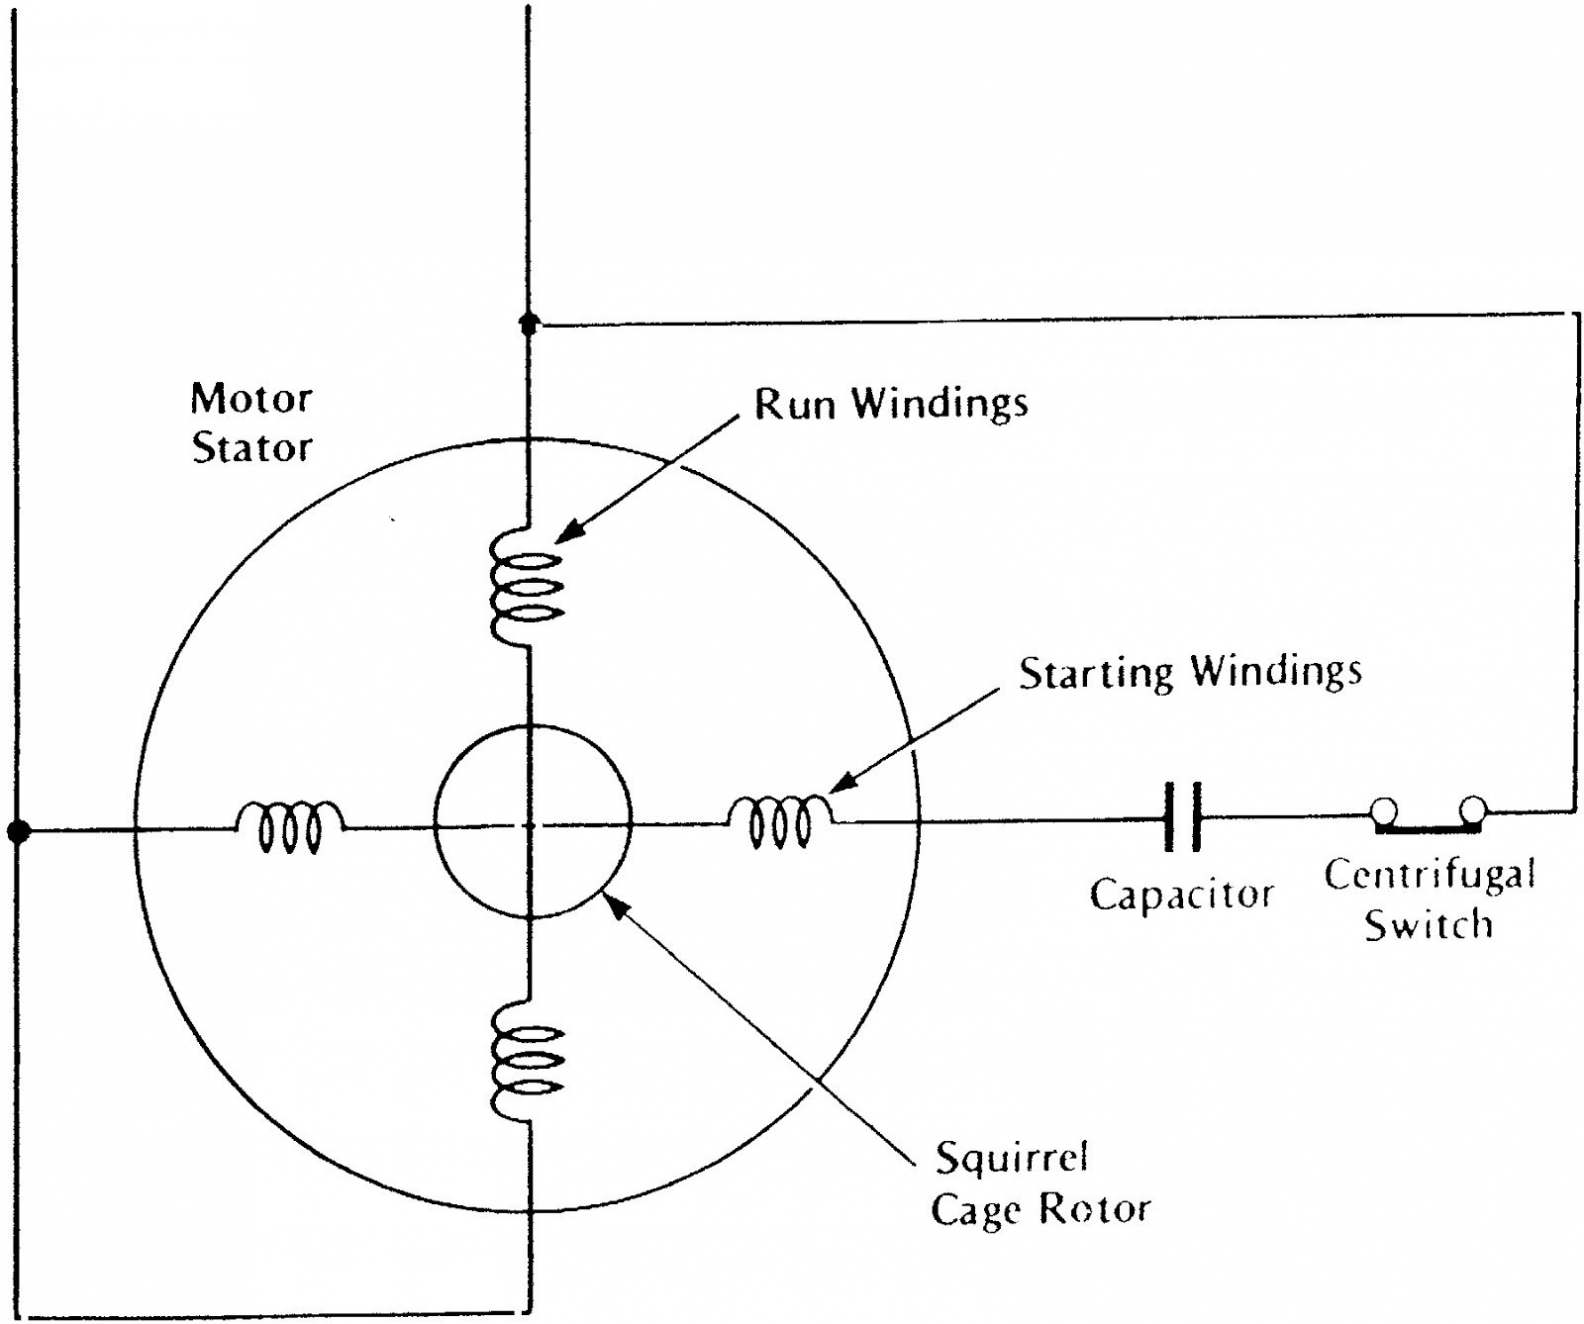 Single Phase Capacitor Start Induction Motor Wiring Diagram | Wiring - 6 Lead Single Phase Motor Wiring Diagram